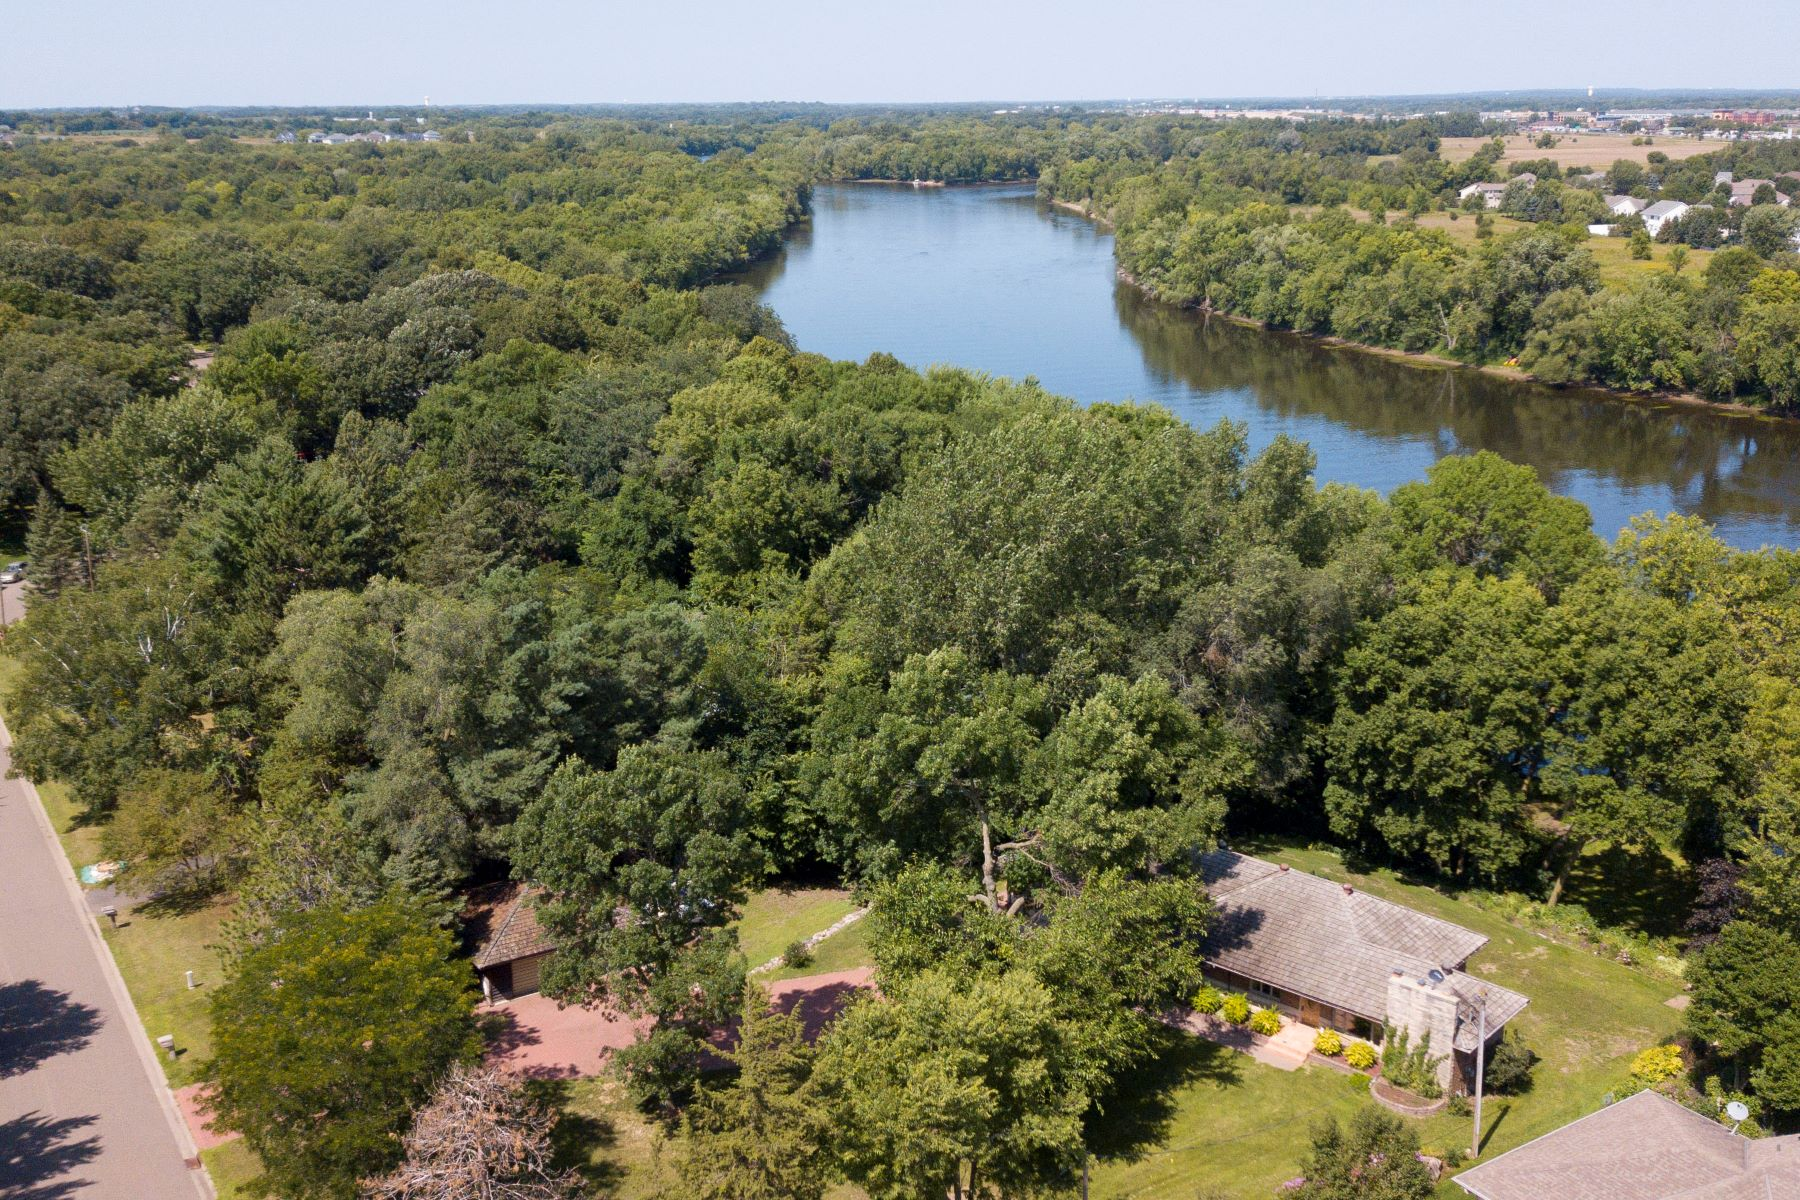 Single Family Homes for Sale at 1+ Acre 4 Bedroom Home and Riverfront Living at its Best! 12600 Overlook Road Dayton, Minnesota 55327 United States